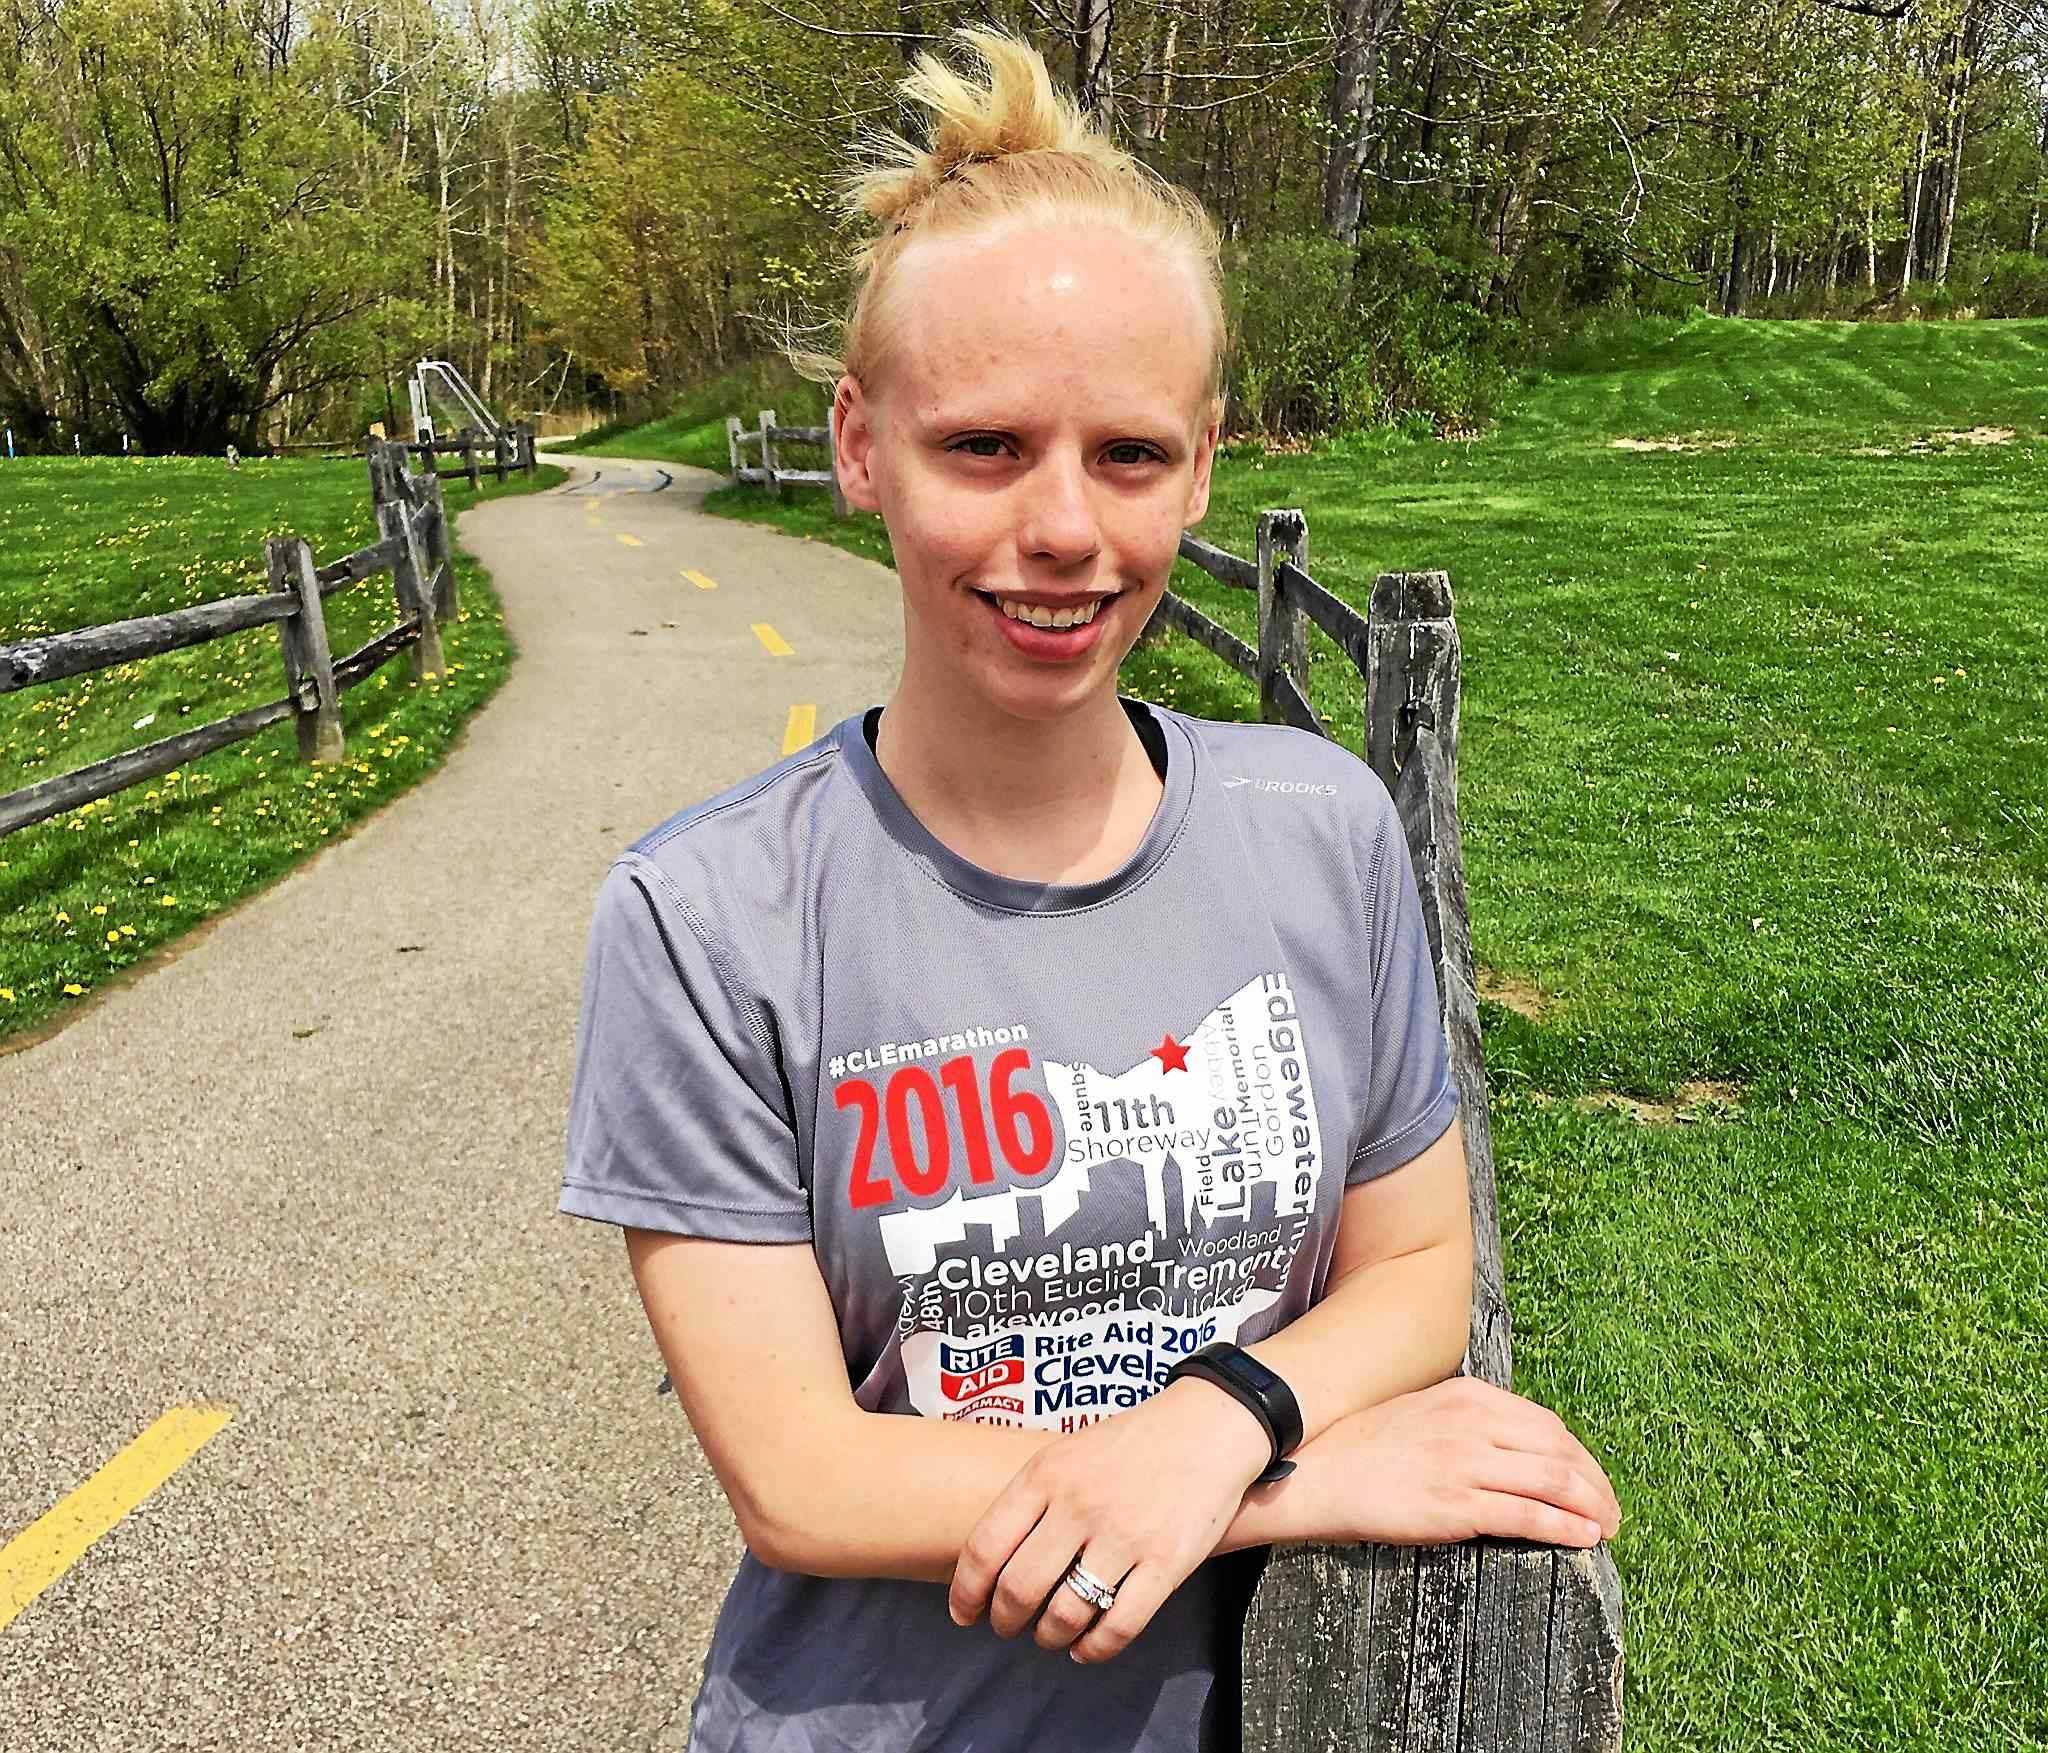 Shelby Jones is running her 100th Half Marathon May 20, half of these in the last 12 months